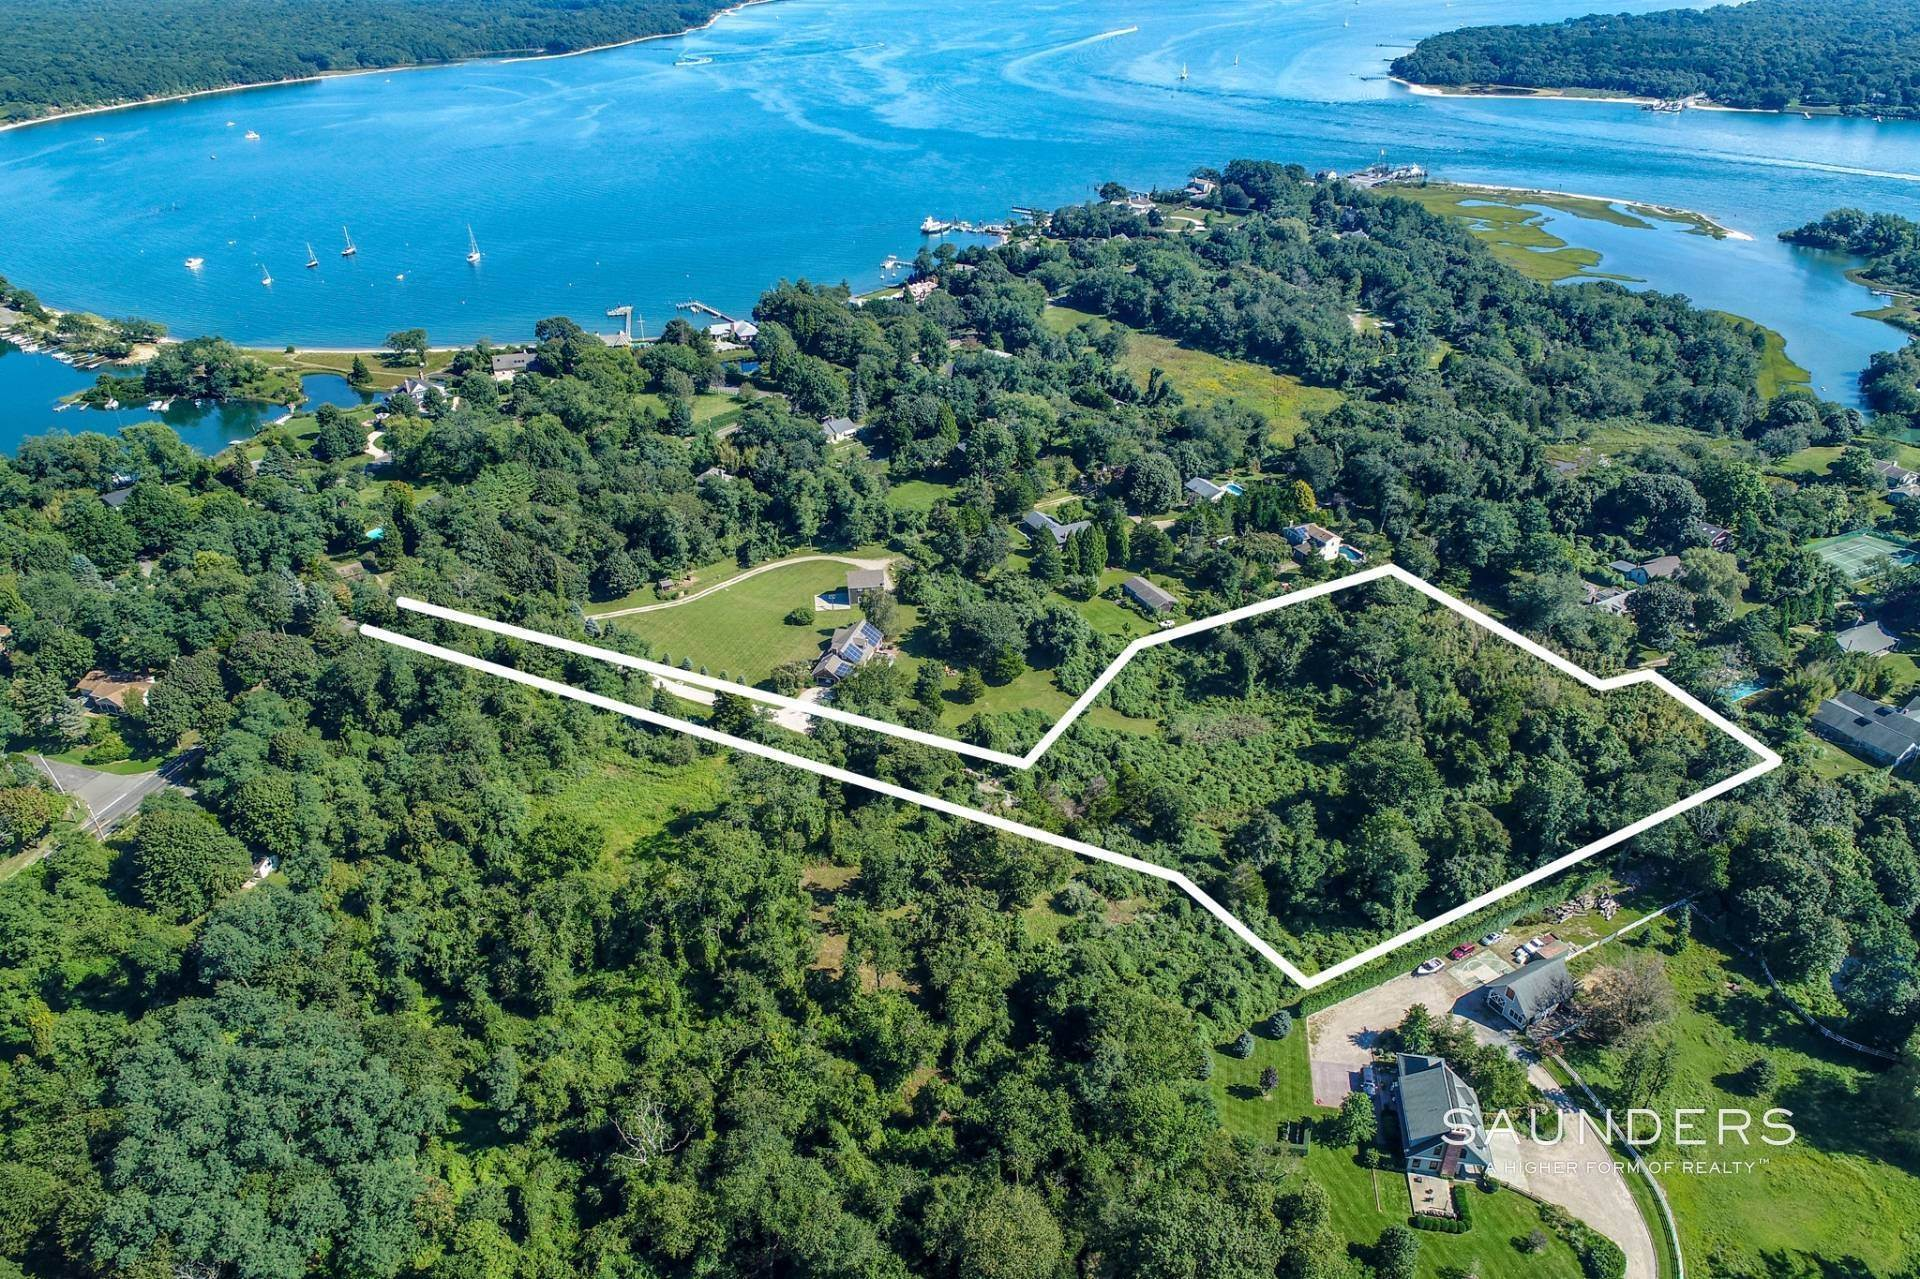 Land for Sale at Shelter Island Acreage Bordering Horse Farm 104 South Ferry Road, Shelter Island, NY 11964